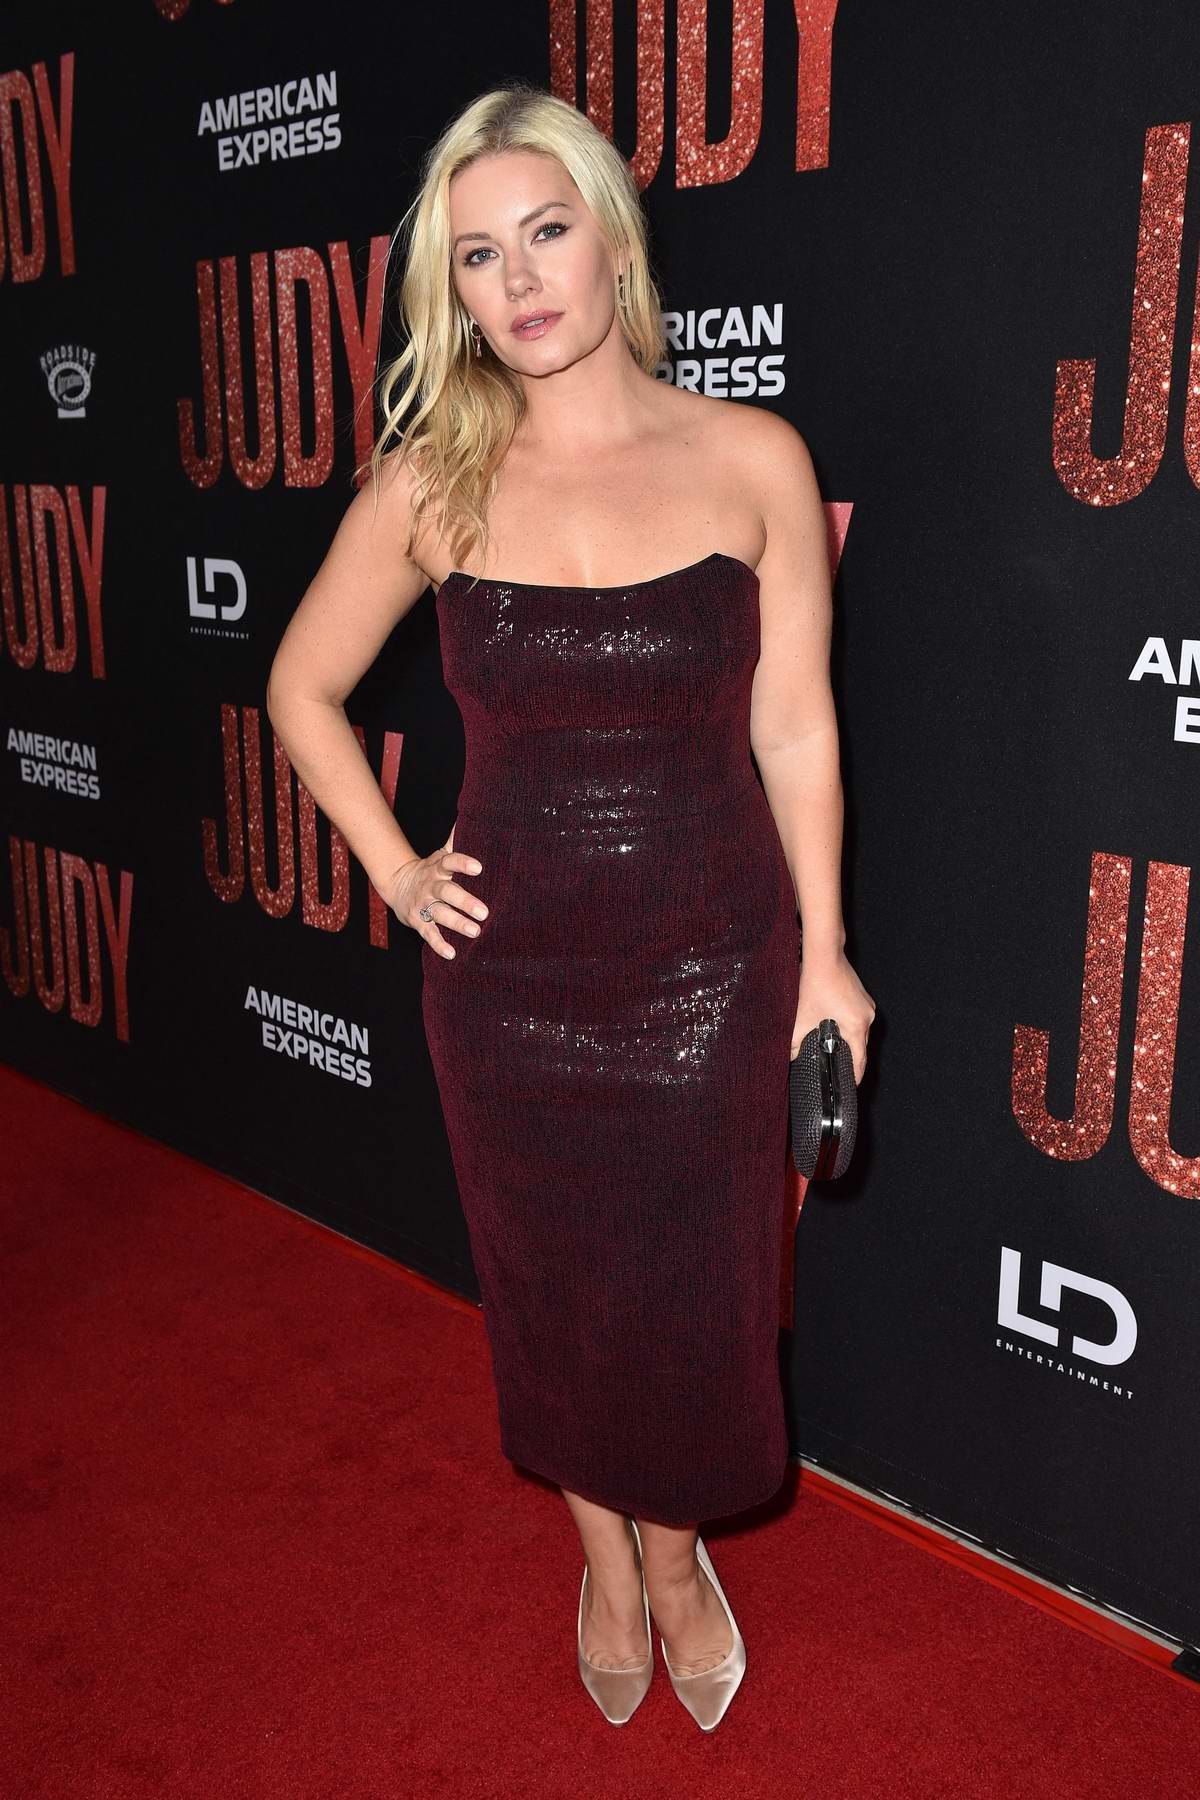 Elisha Cuthbert attends the premiere of 'Judy' in Los Angeles